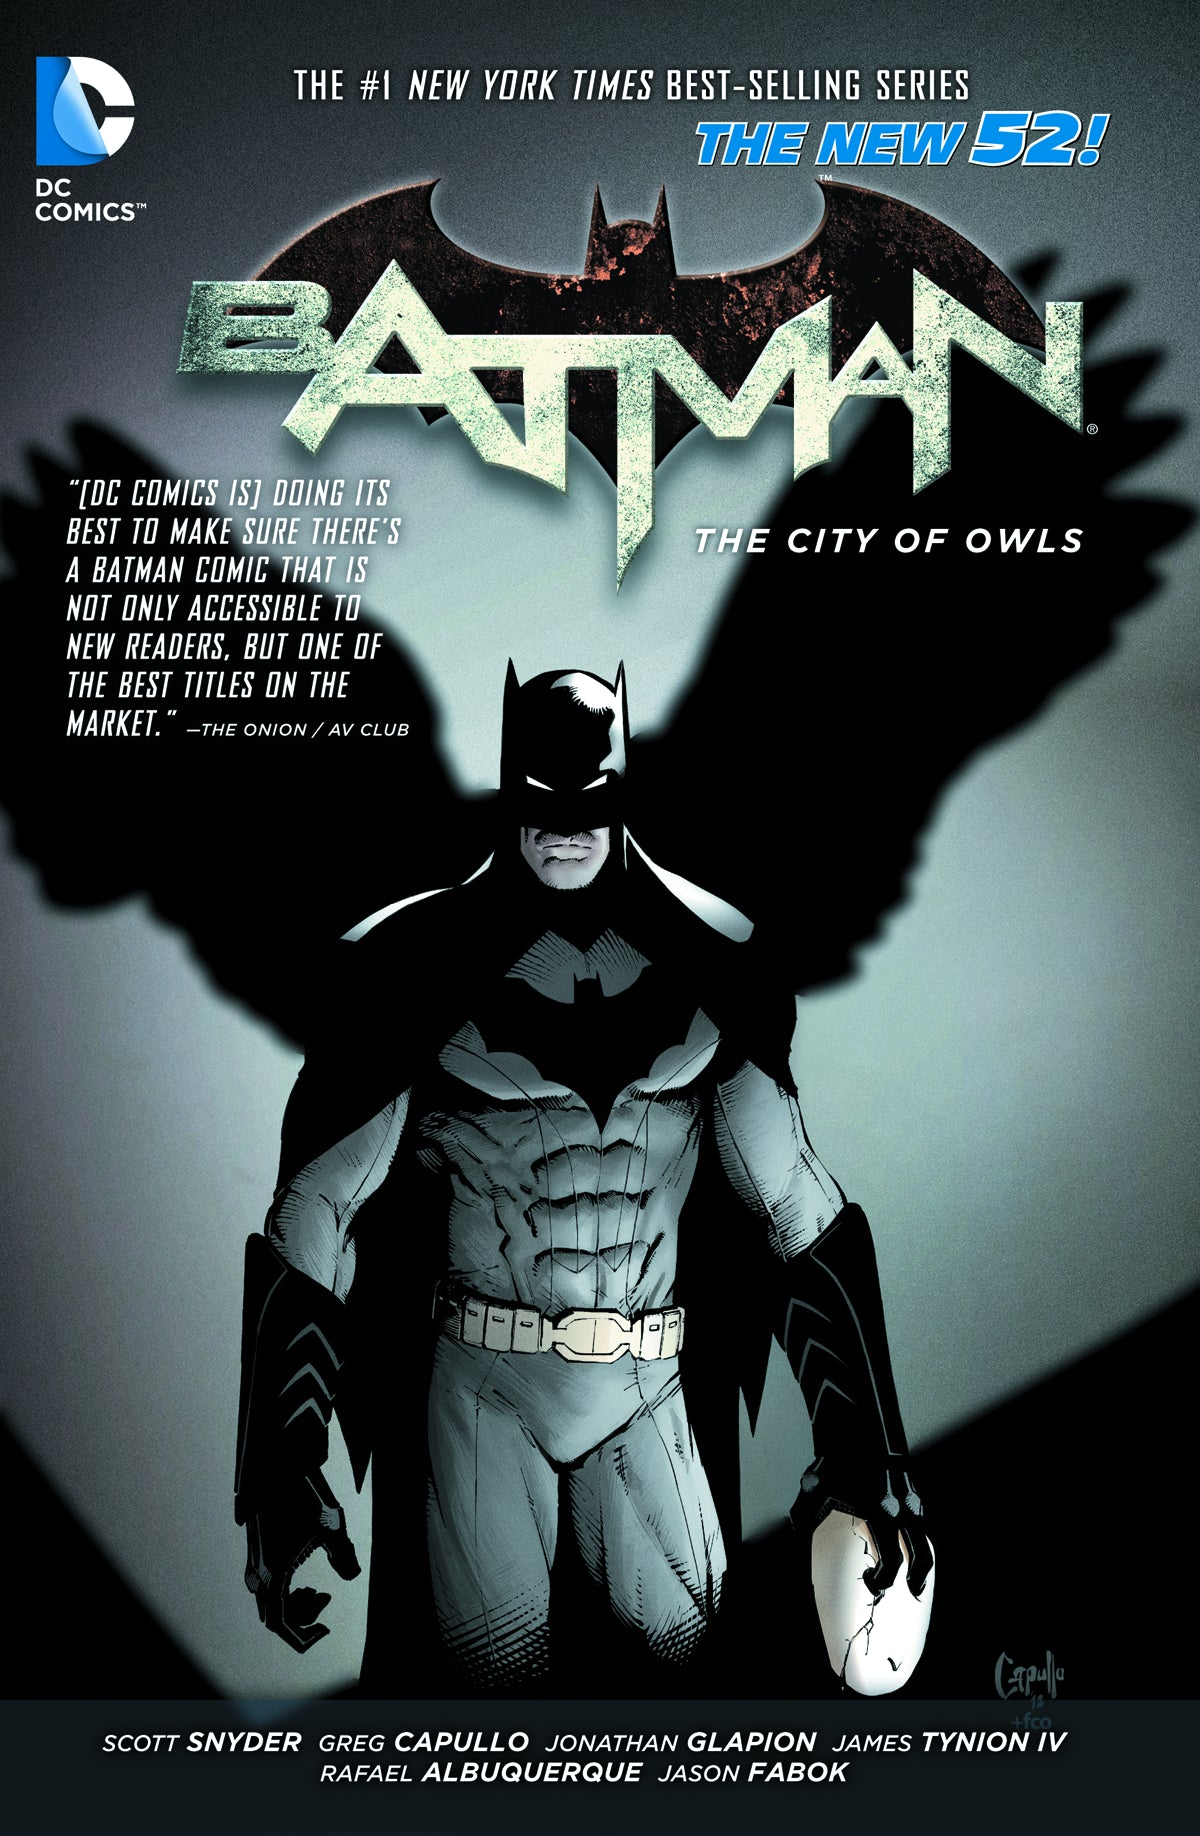 BATMAN TP VOL 02 THE CITY OF OWLS (N52) | Game Master's Emporium (The New GME)